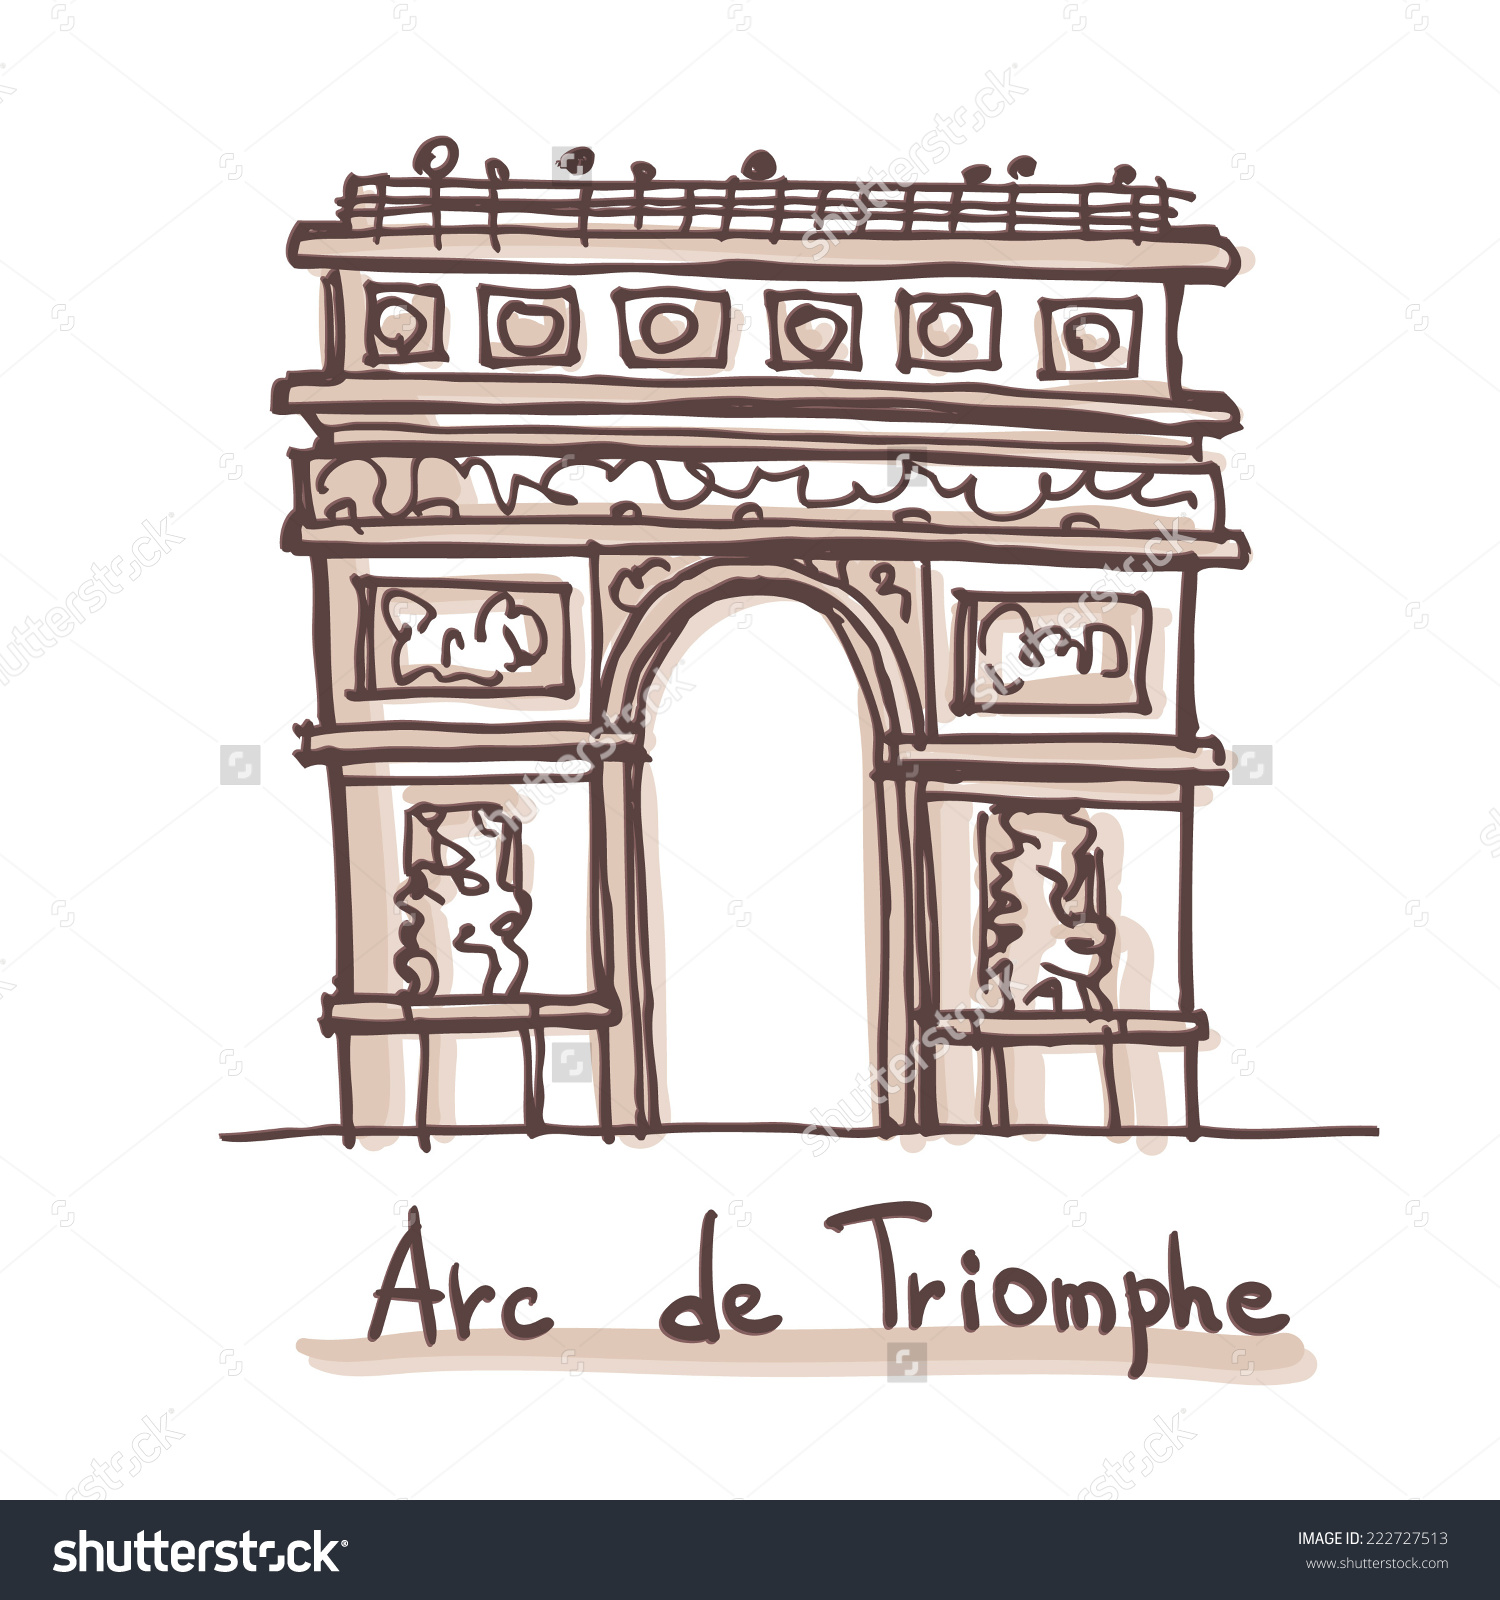 Hand Drawn Sketch Arc De Triomphe Stock Vector 222727513.